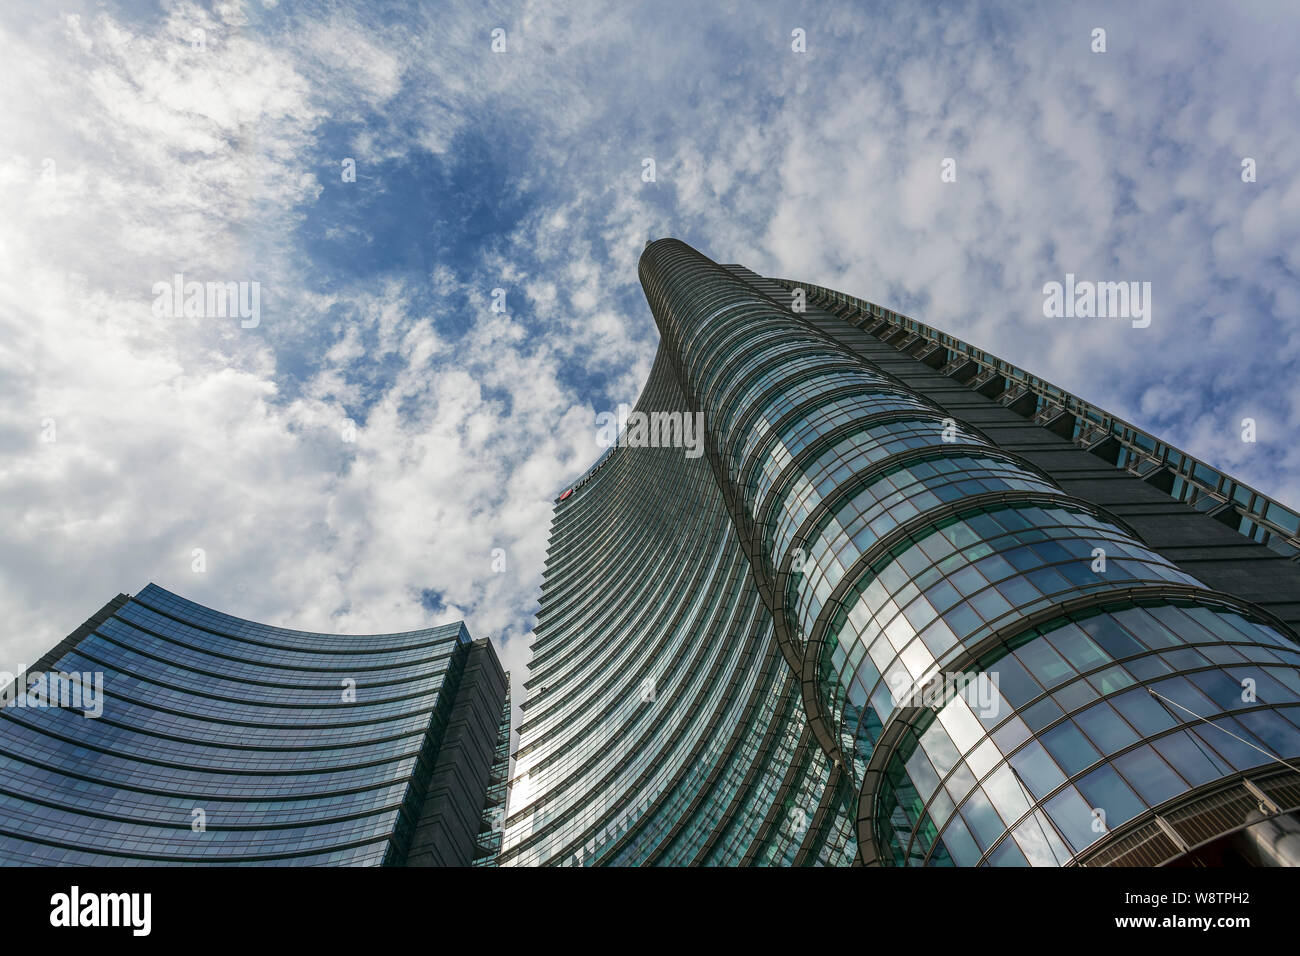 UniCredit Tower, headquarters of the Italian bank UniCredit, Milan, Lombardy, Italy Stock Photo